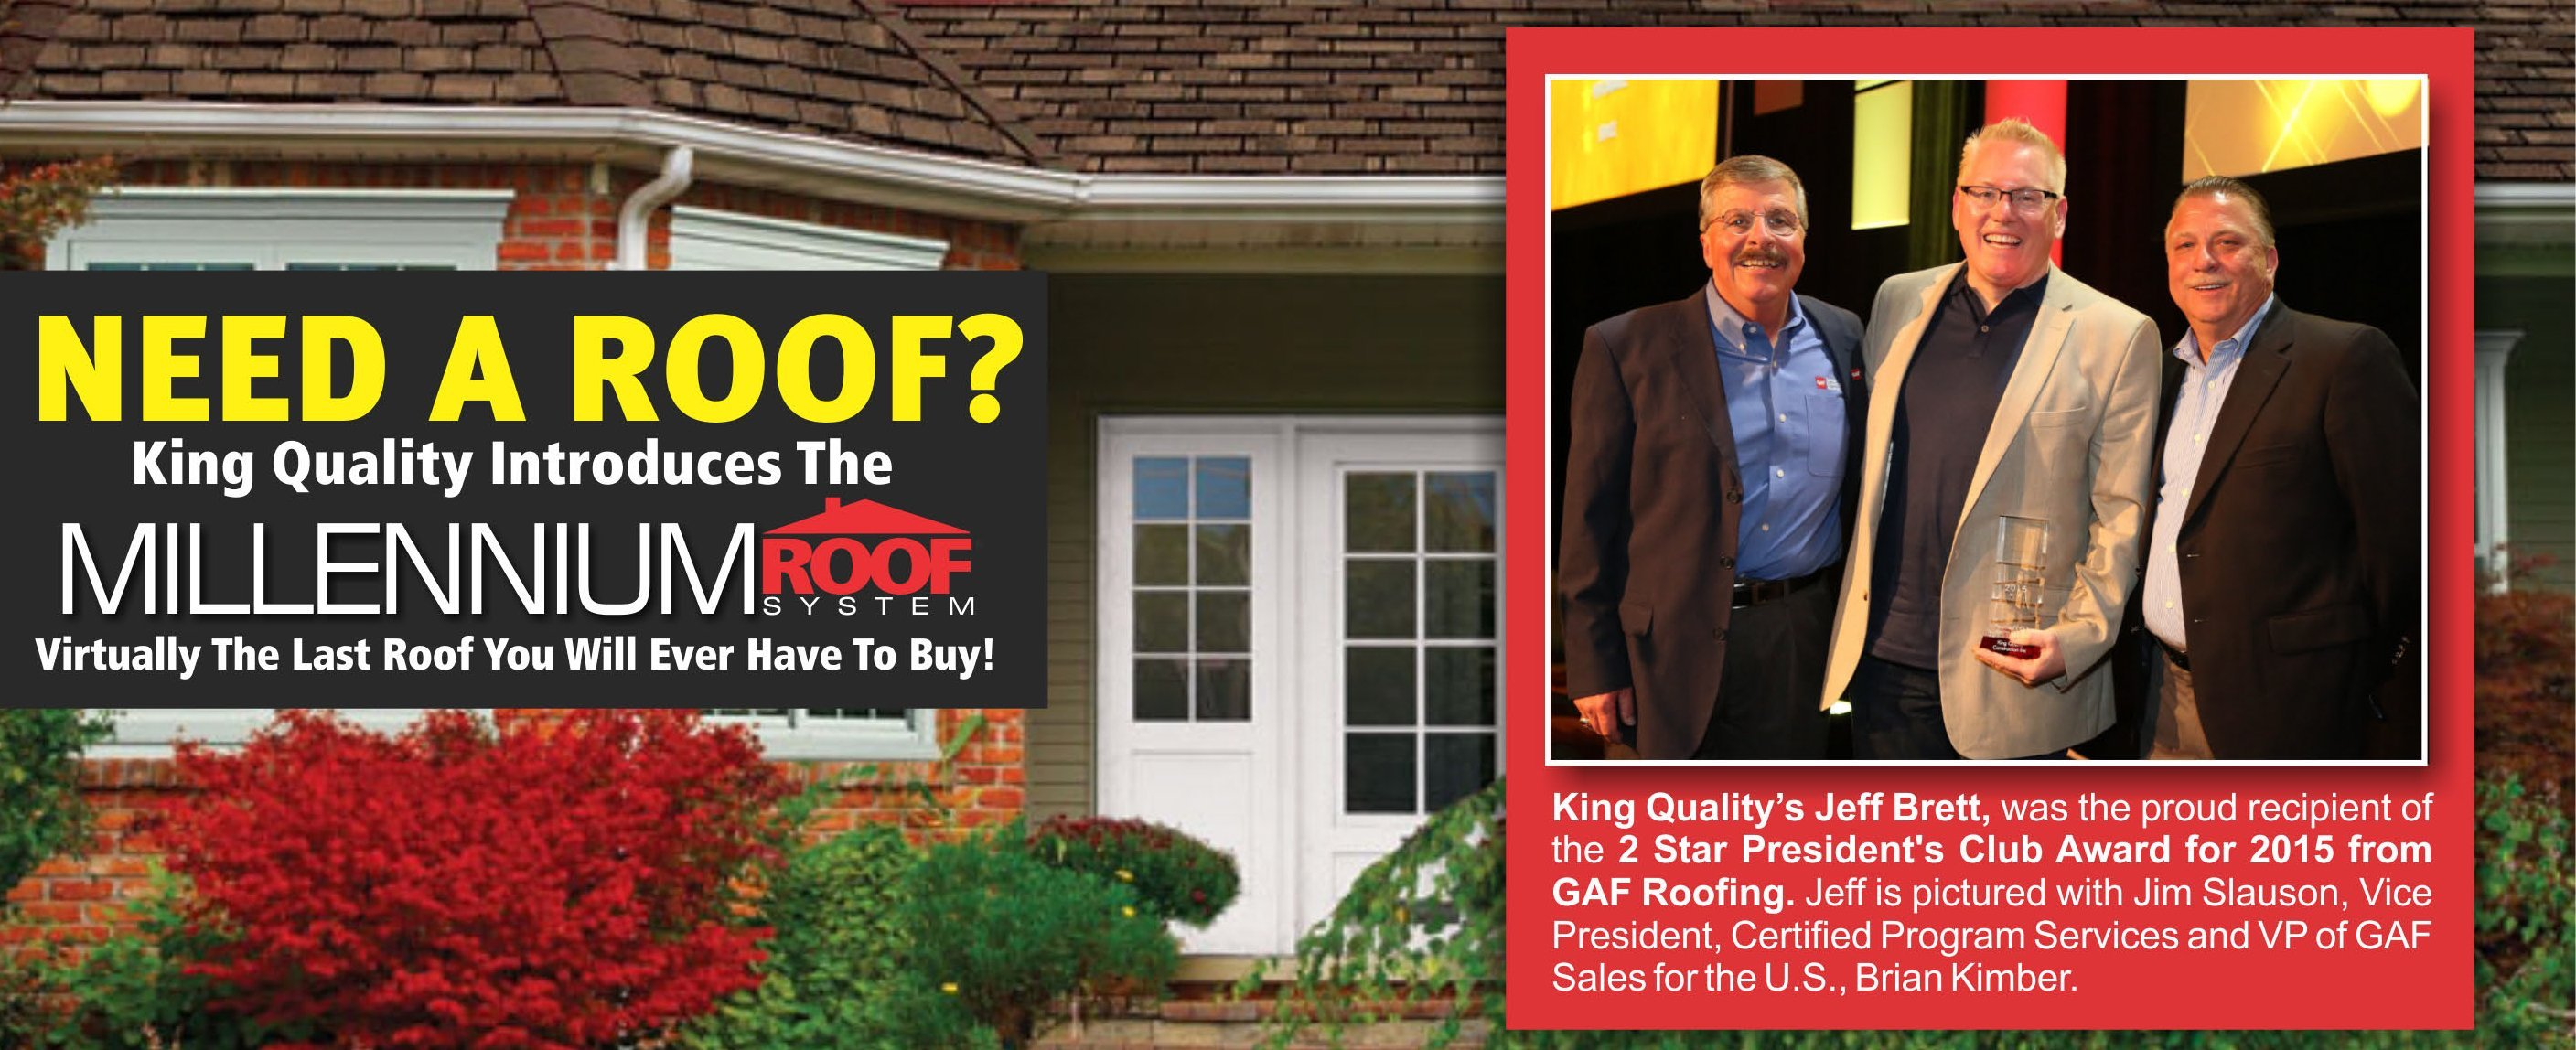 King Quality introduces the Millennium Roof System, virtually the last roof you'll ever need to buy!